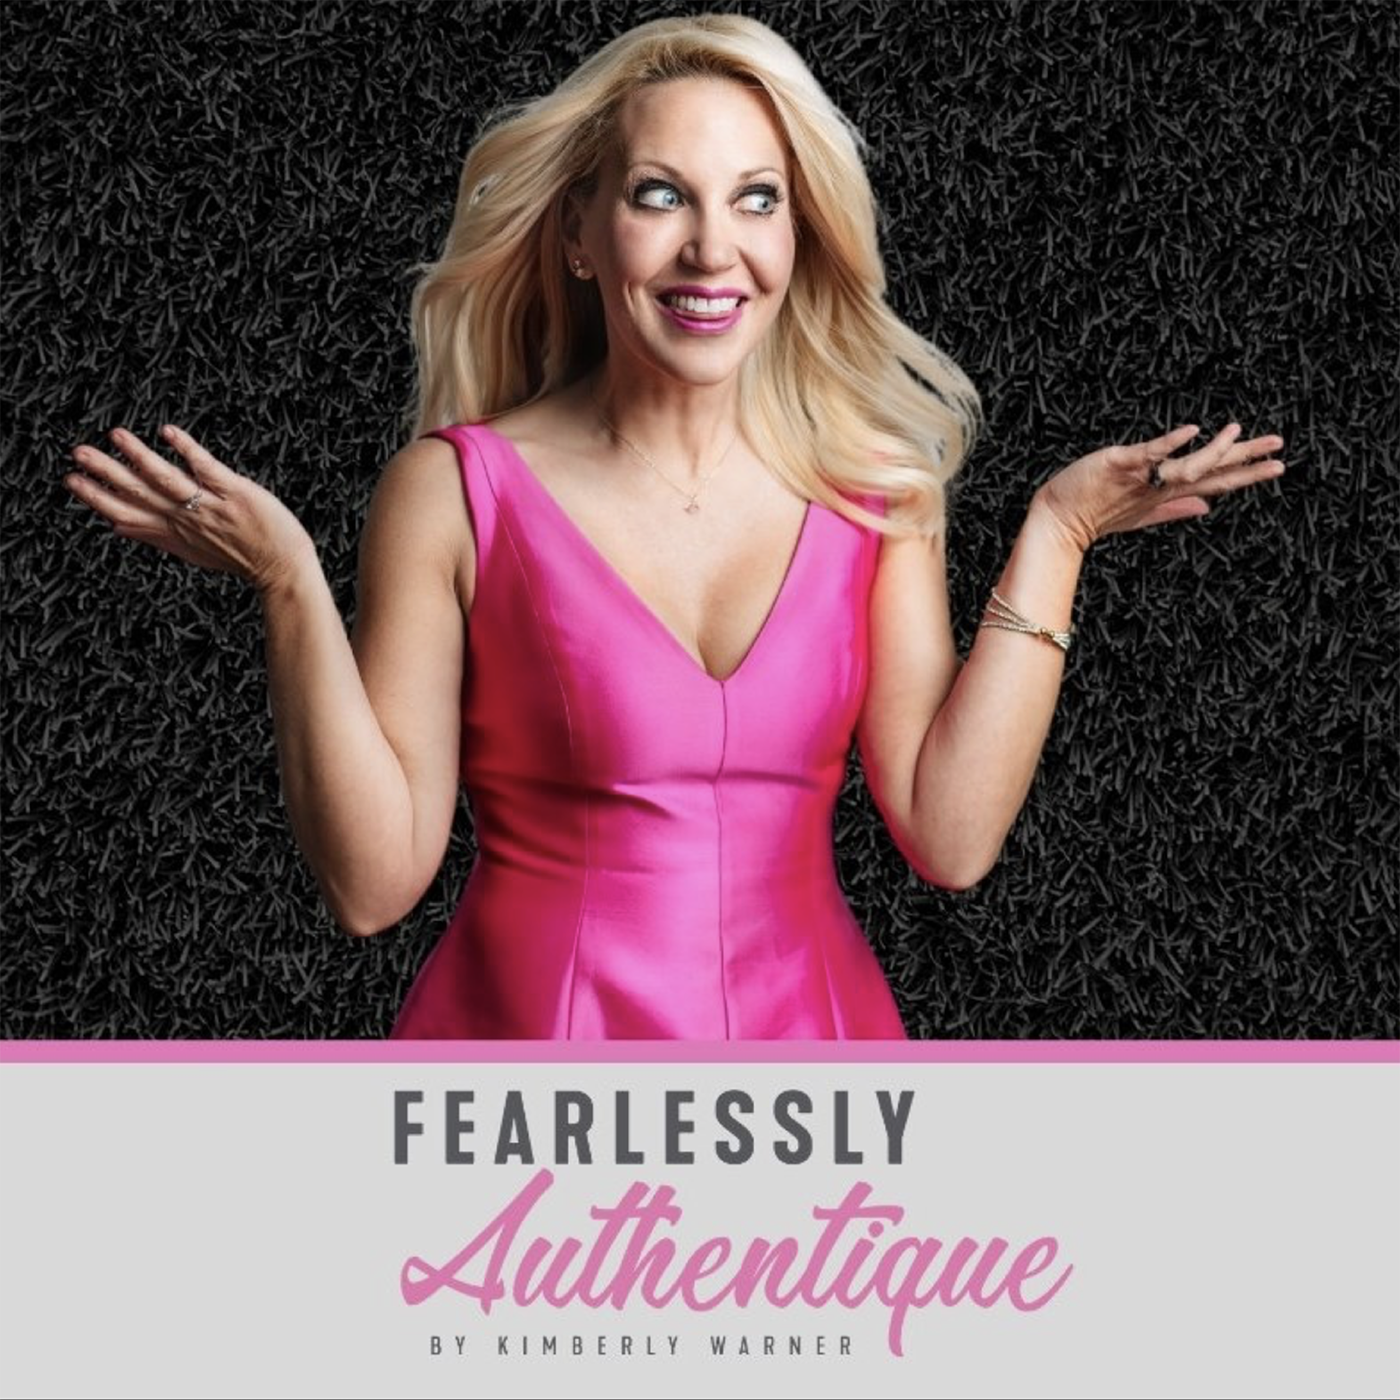 Fearlessly Authentique by Kimberly Warner show art